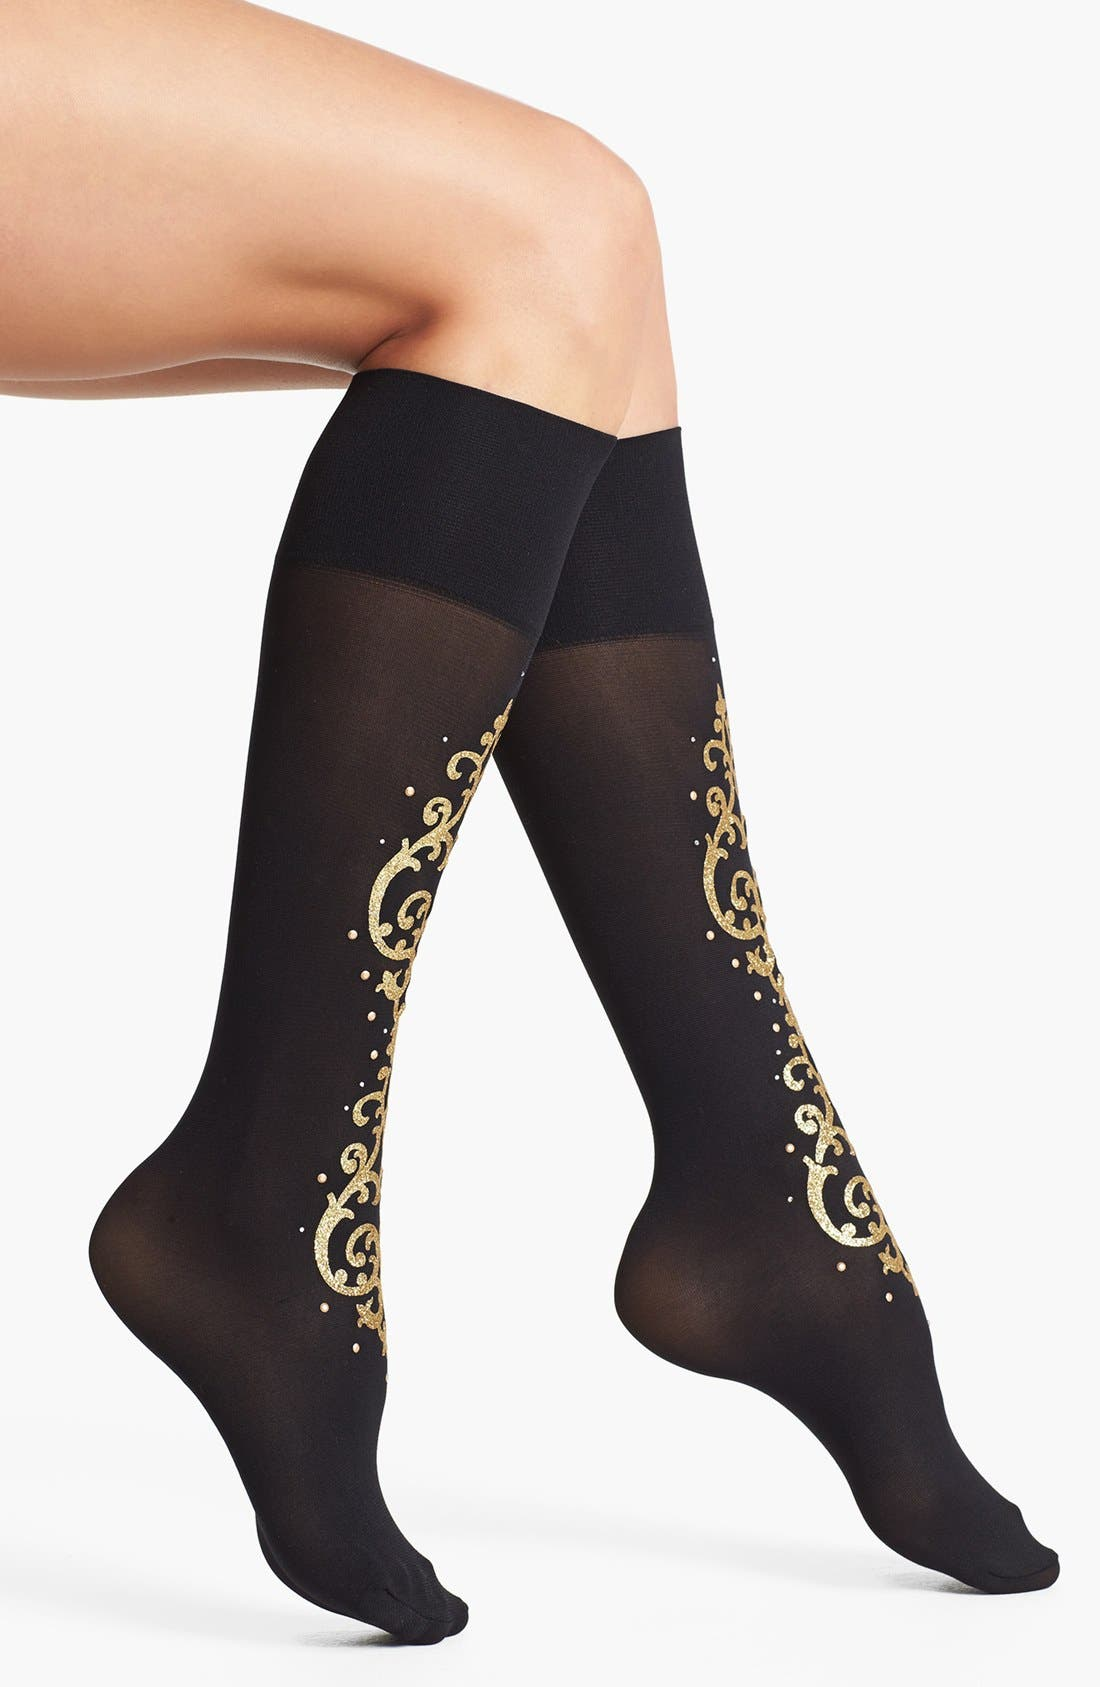 Main Image - Pretty Polly 'Baroque' Embellished Knee High Socks